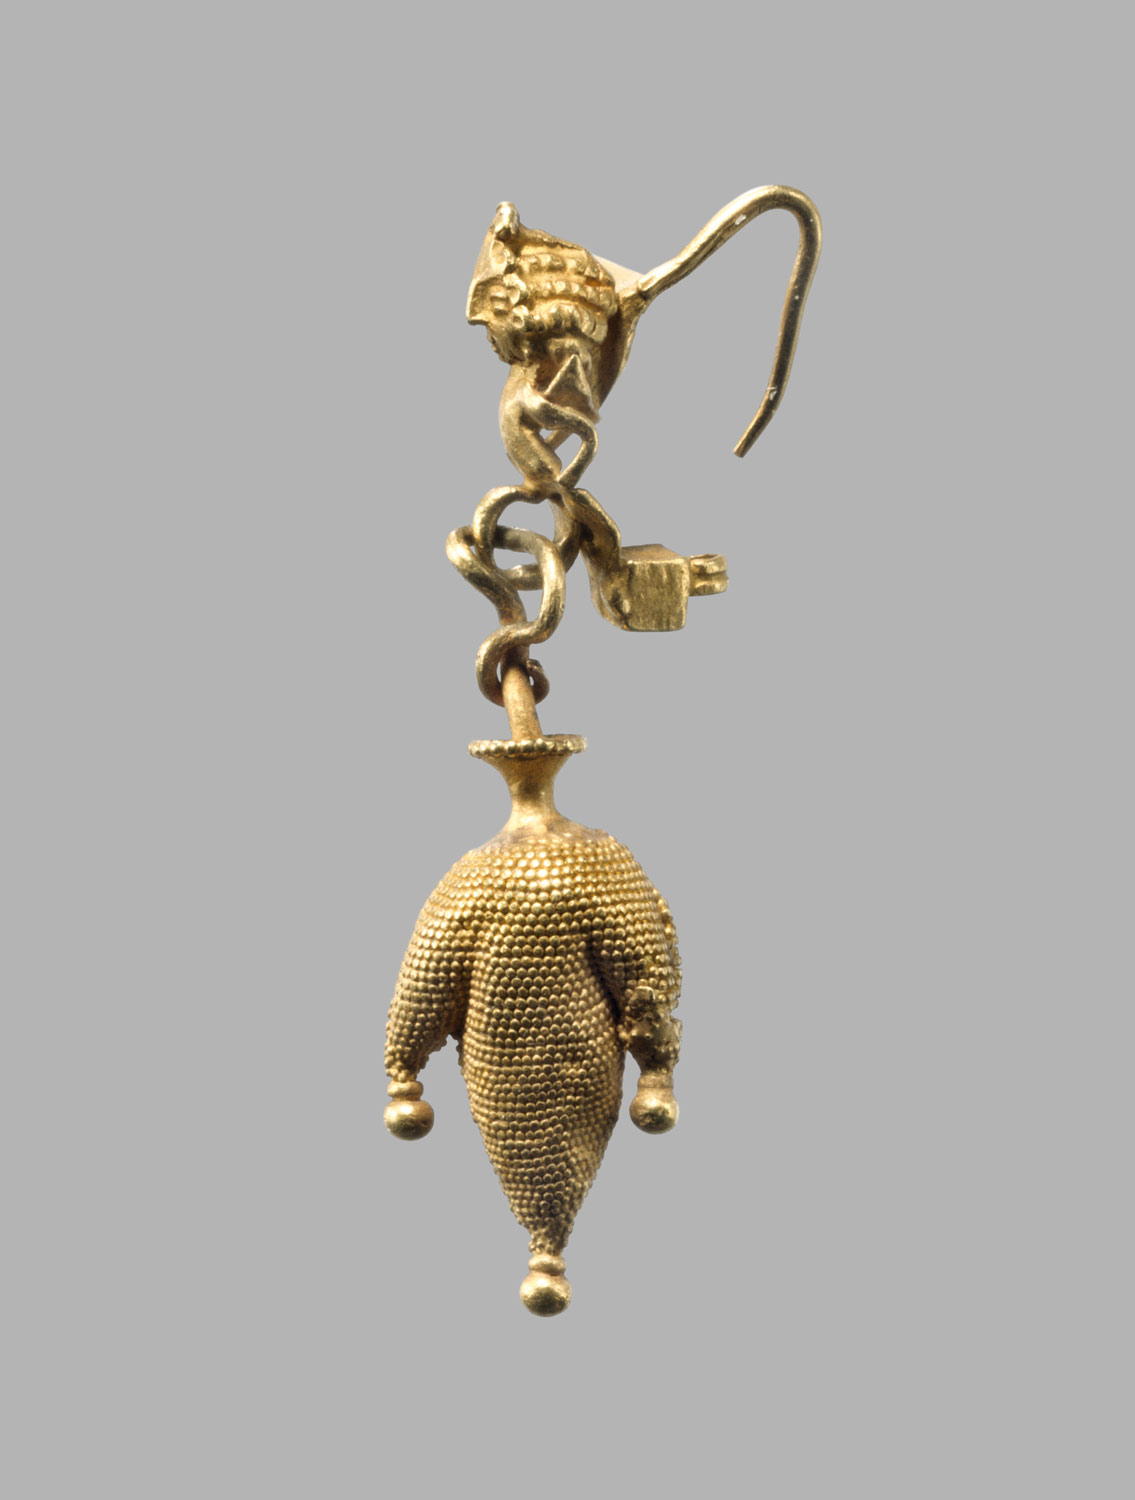 Earring in the form of a three-lobed wineskin